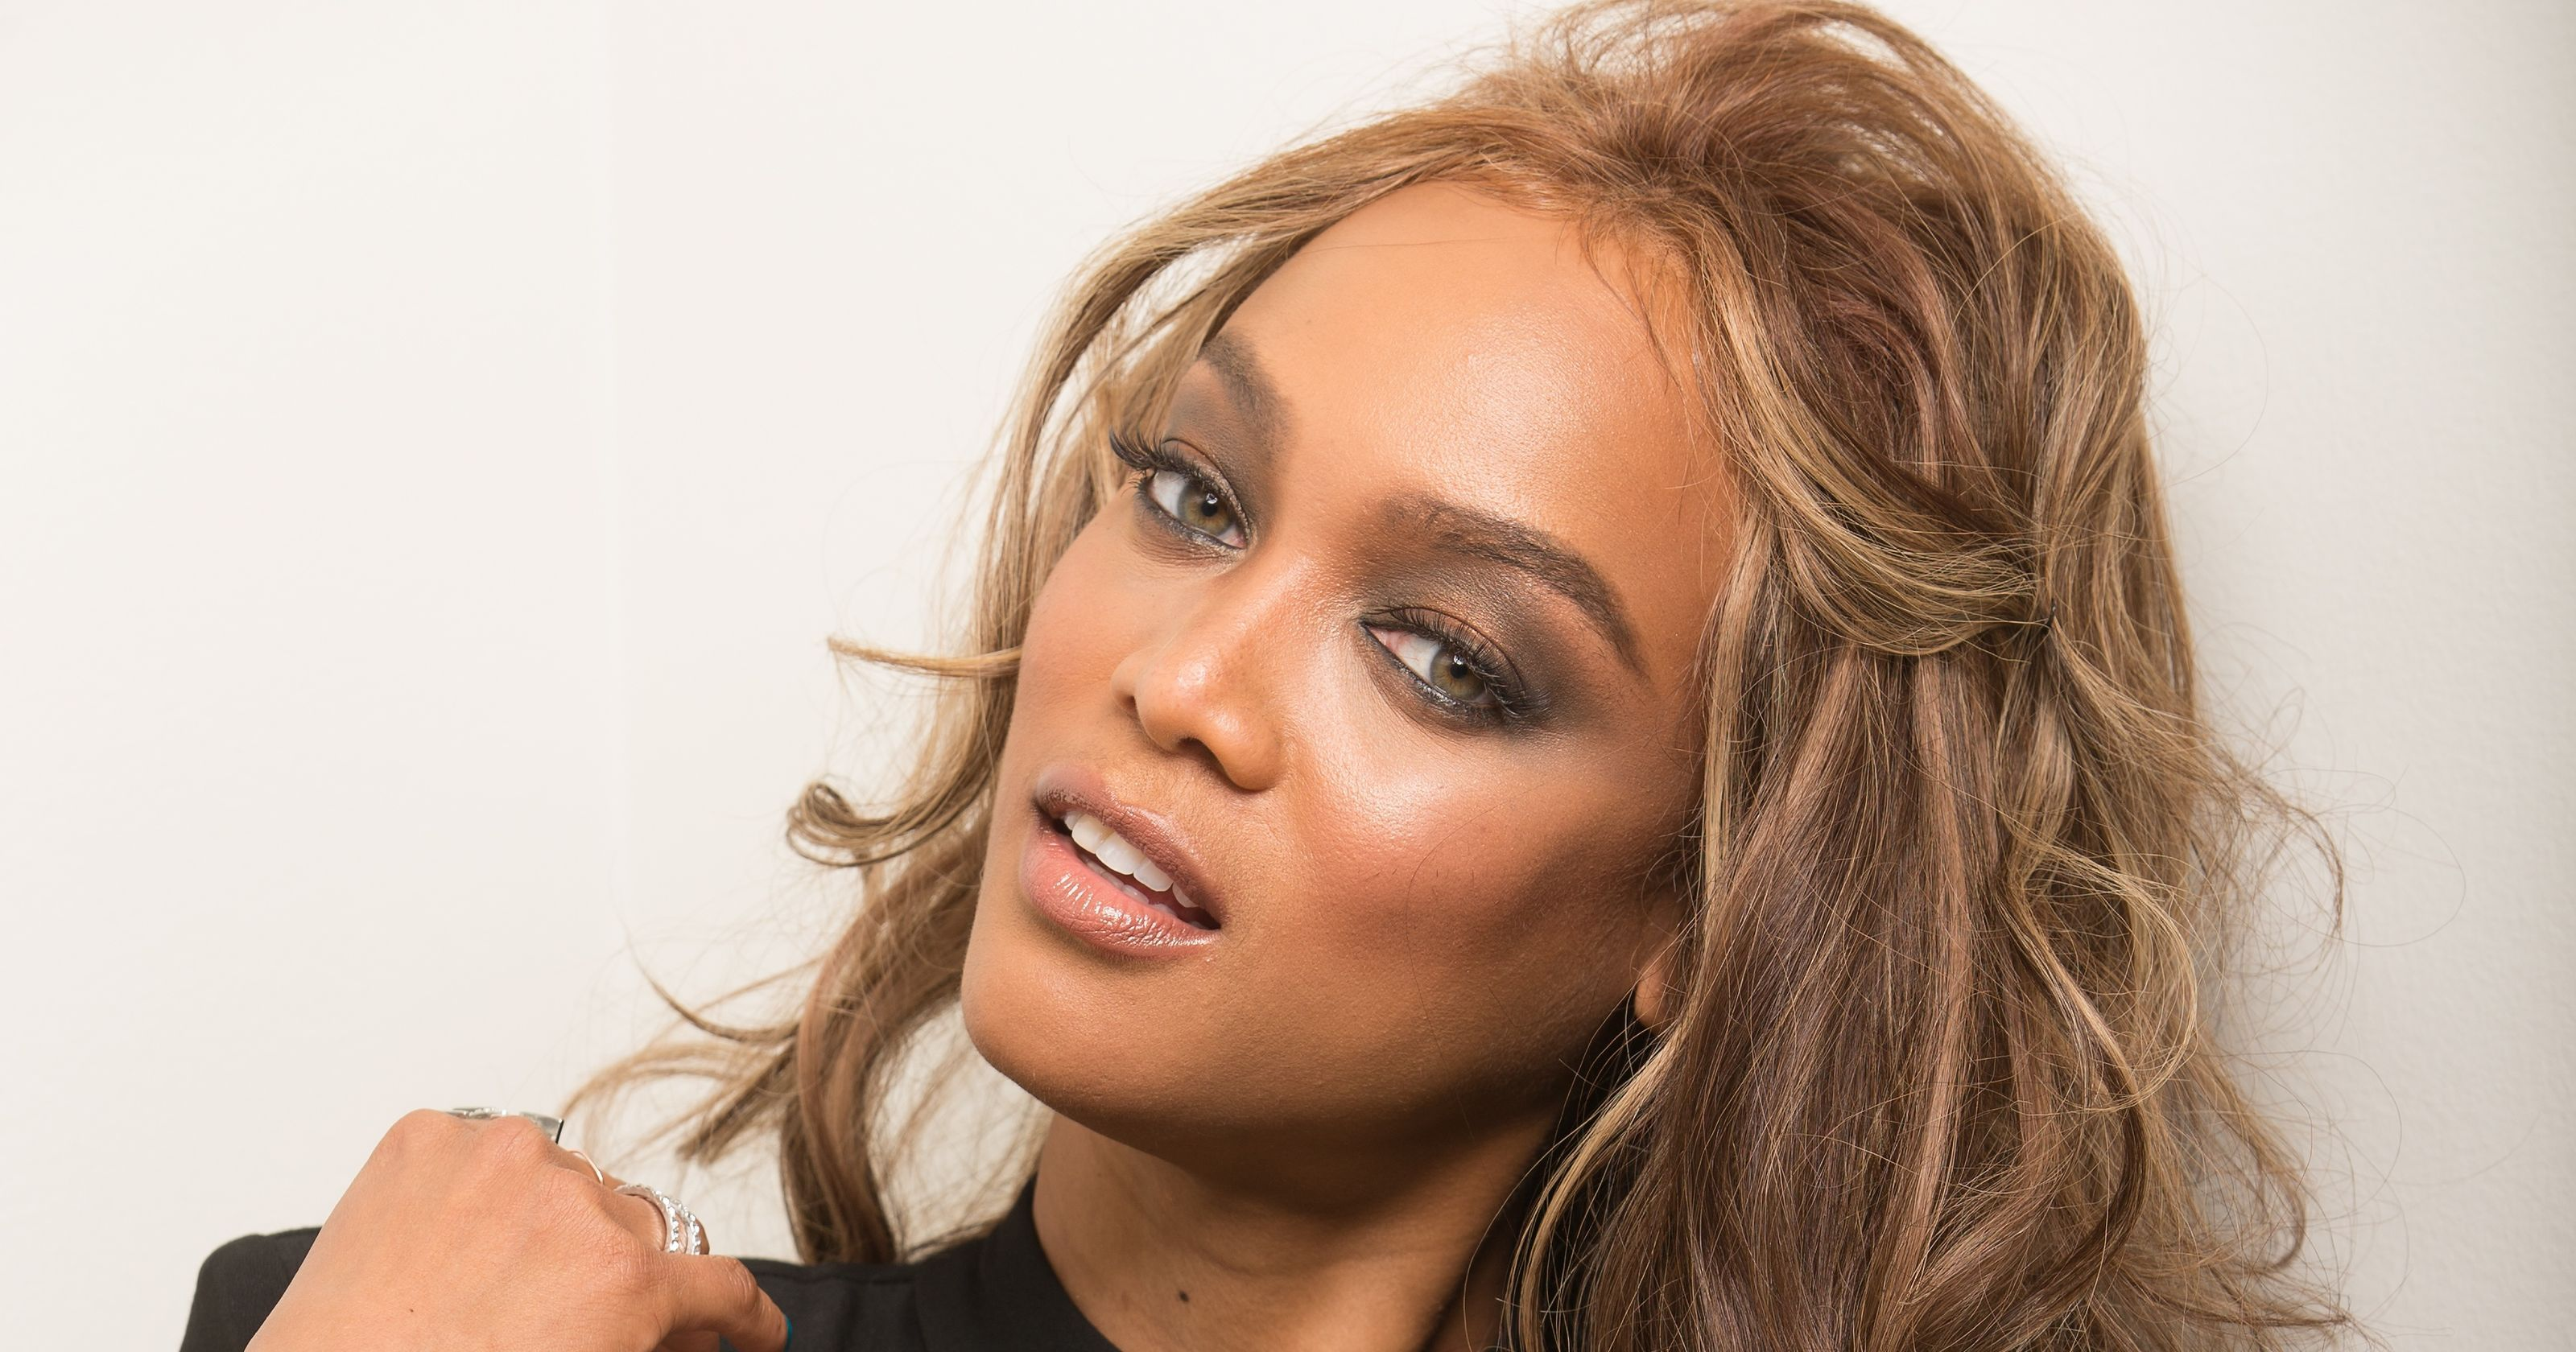 essays on tyra banks Tyra banks this essay tyra banks and other 64,000+ term papers, college essay examples and free essays are available now on reviewessayscom autor: review • march 1, 2011 • essay • 673 words (3 pages) • 724 views page 1 of 3.